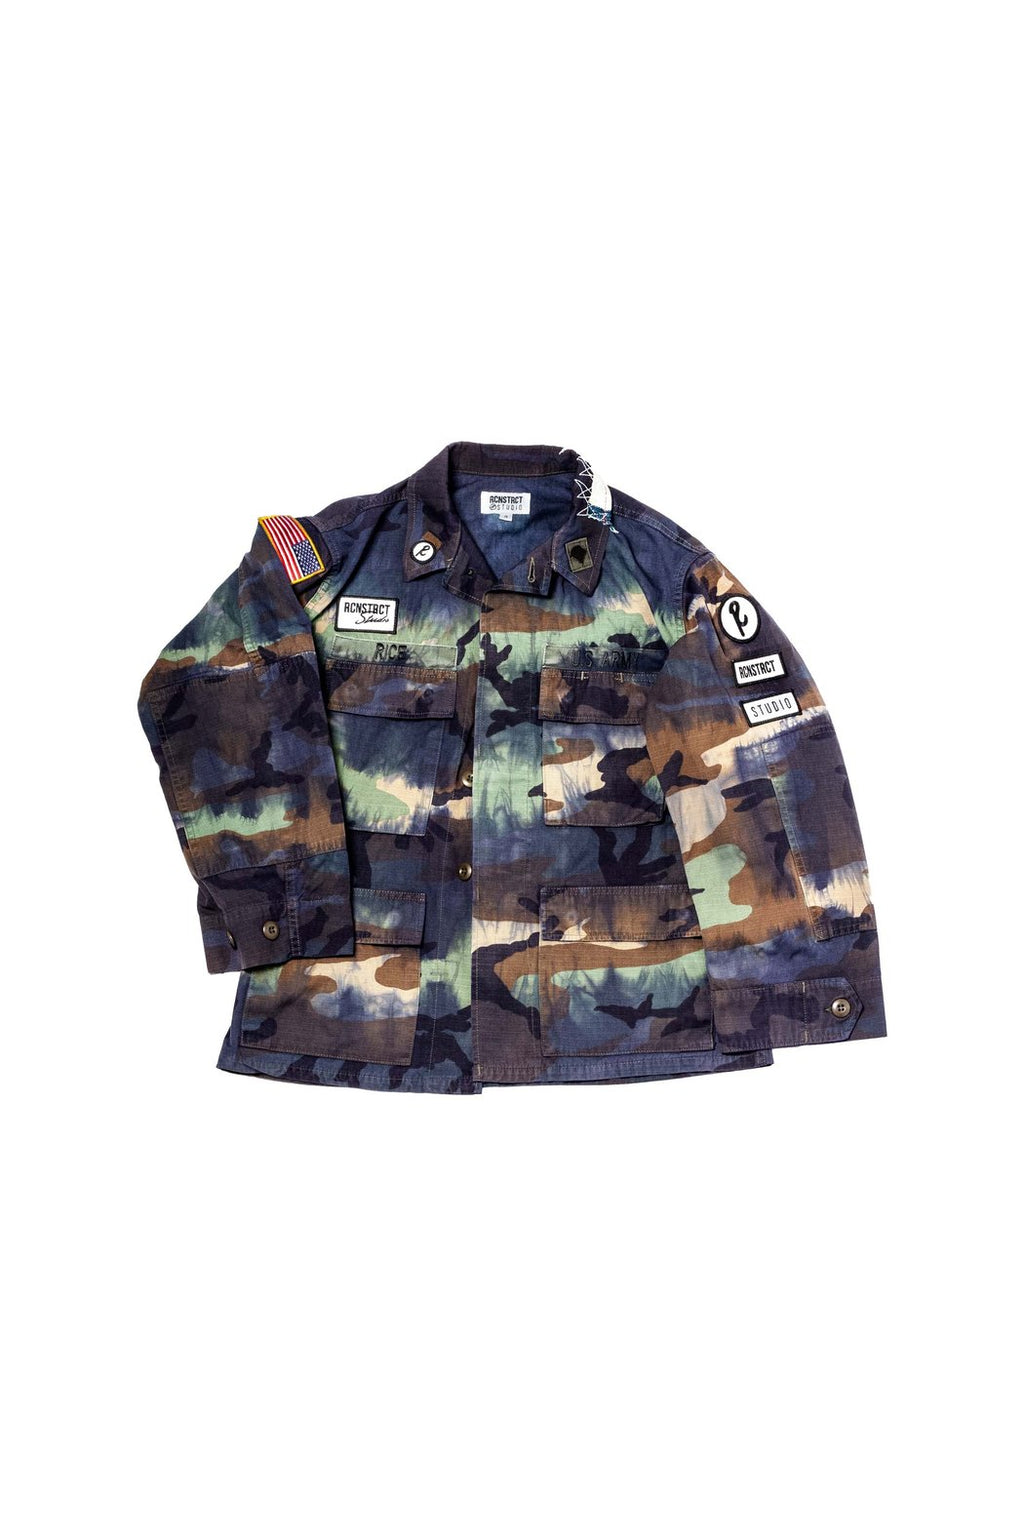 PATCHWORK MILITARY JACKET - EVERY*